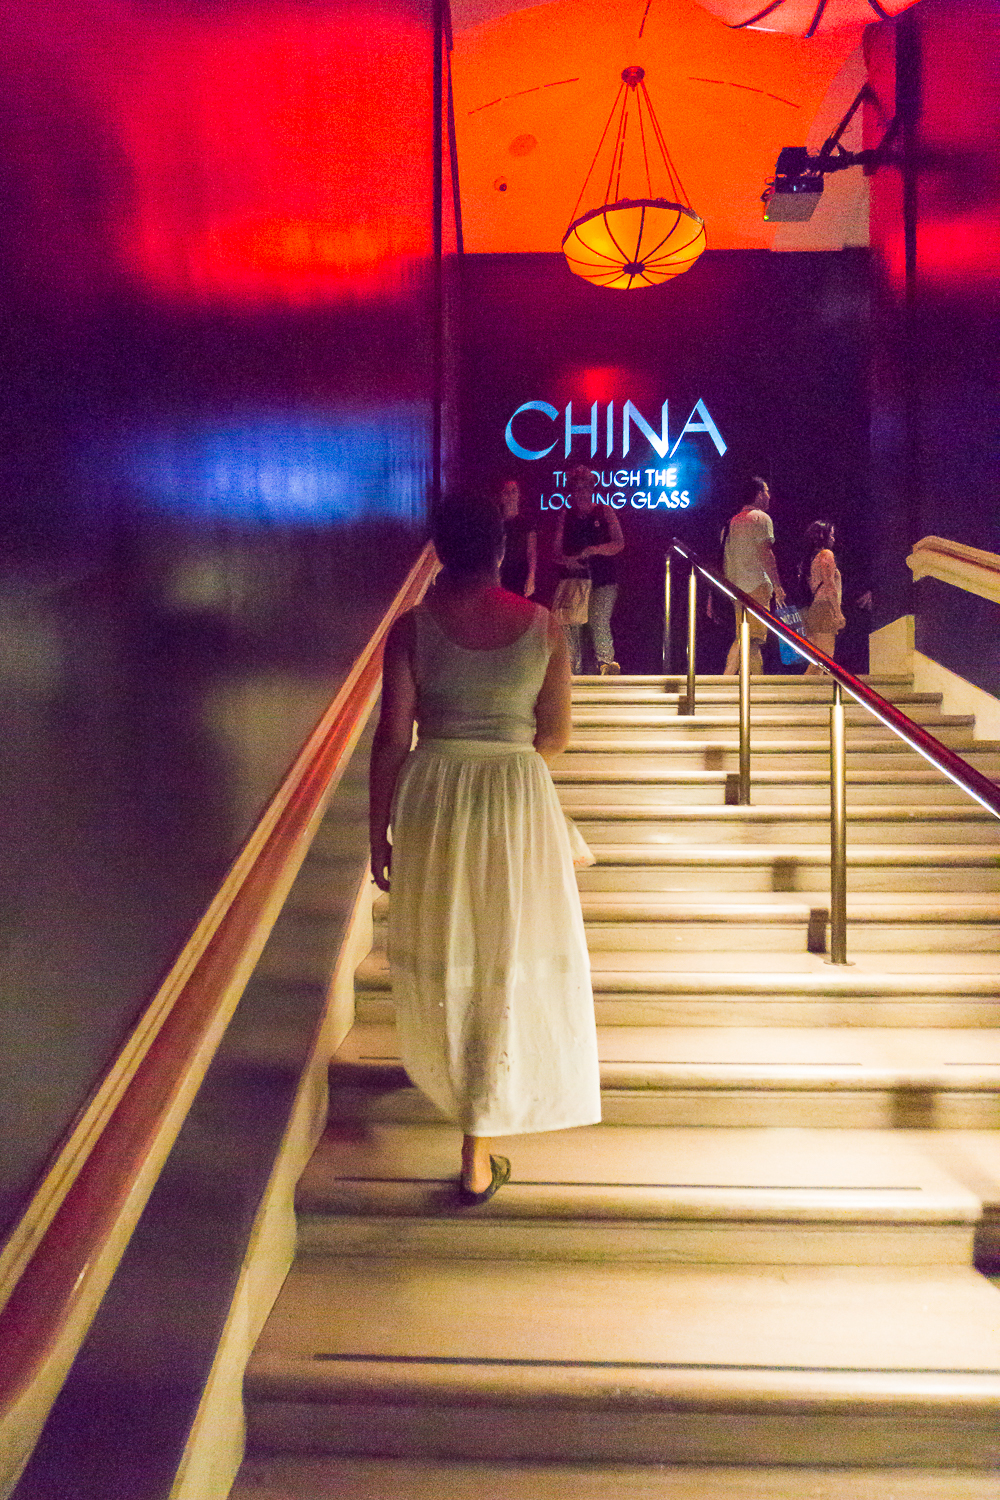 China-through-the-looking-glass-4.jpg